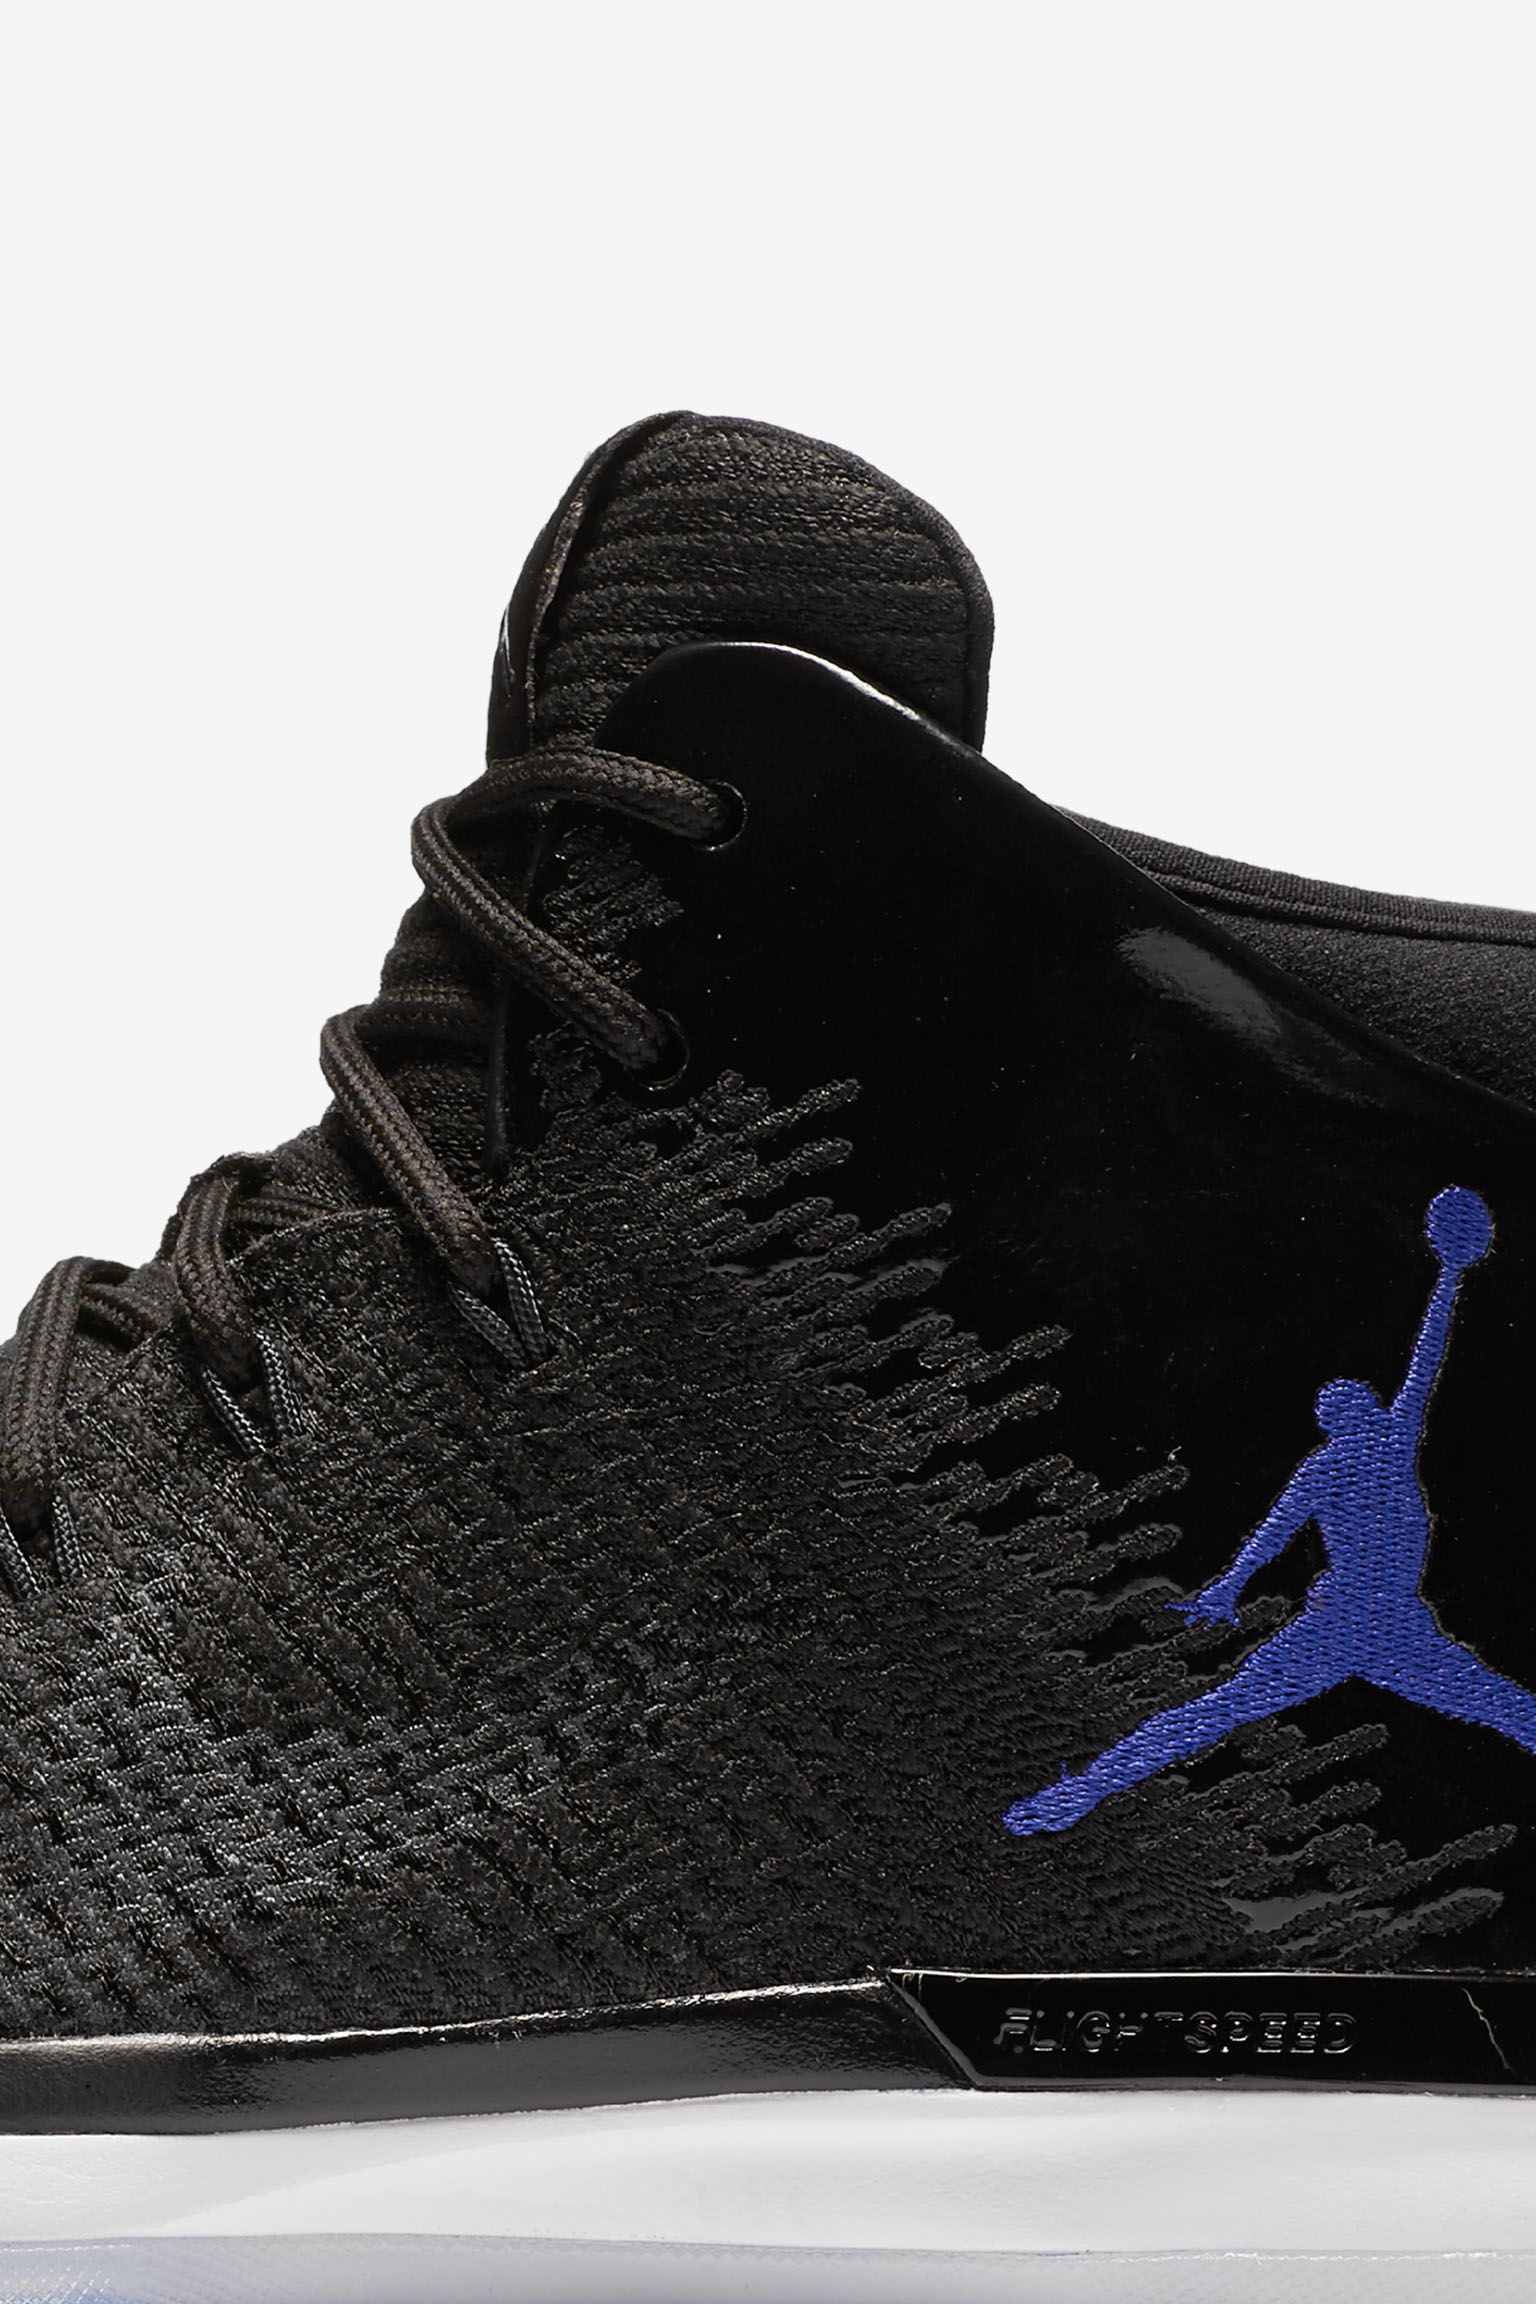 Air Jordan 31 'Black & Concord-White' Release Date.